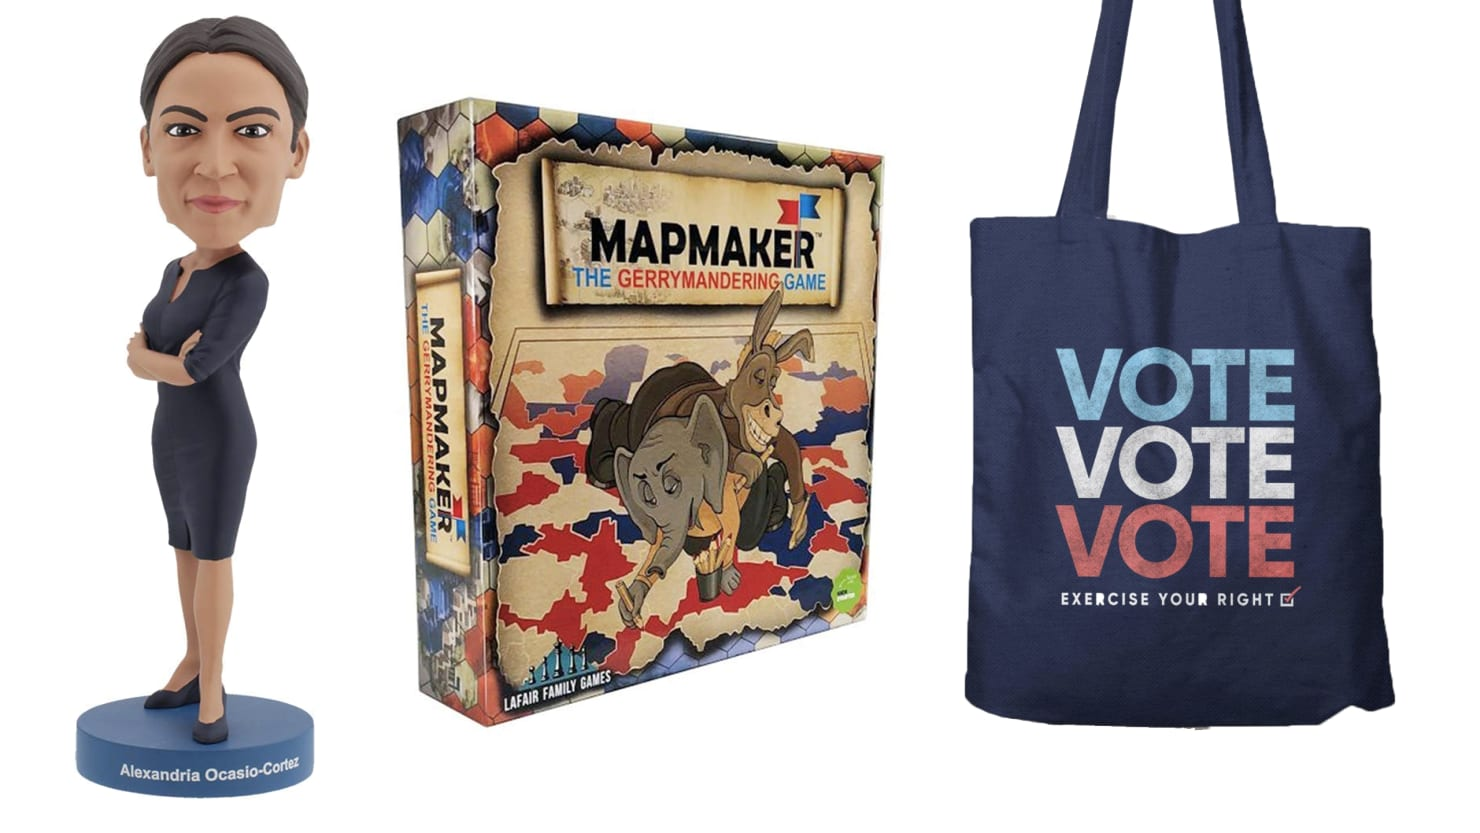 Scouted: Don't Debate, Just Buy These Political Gifts